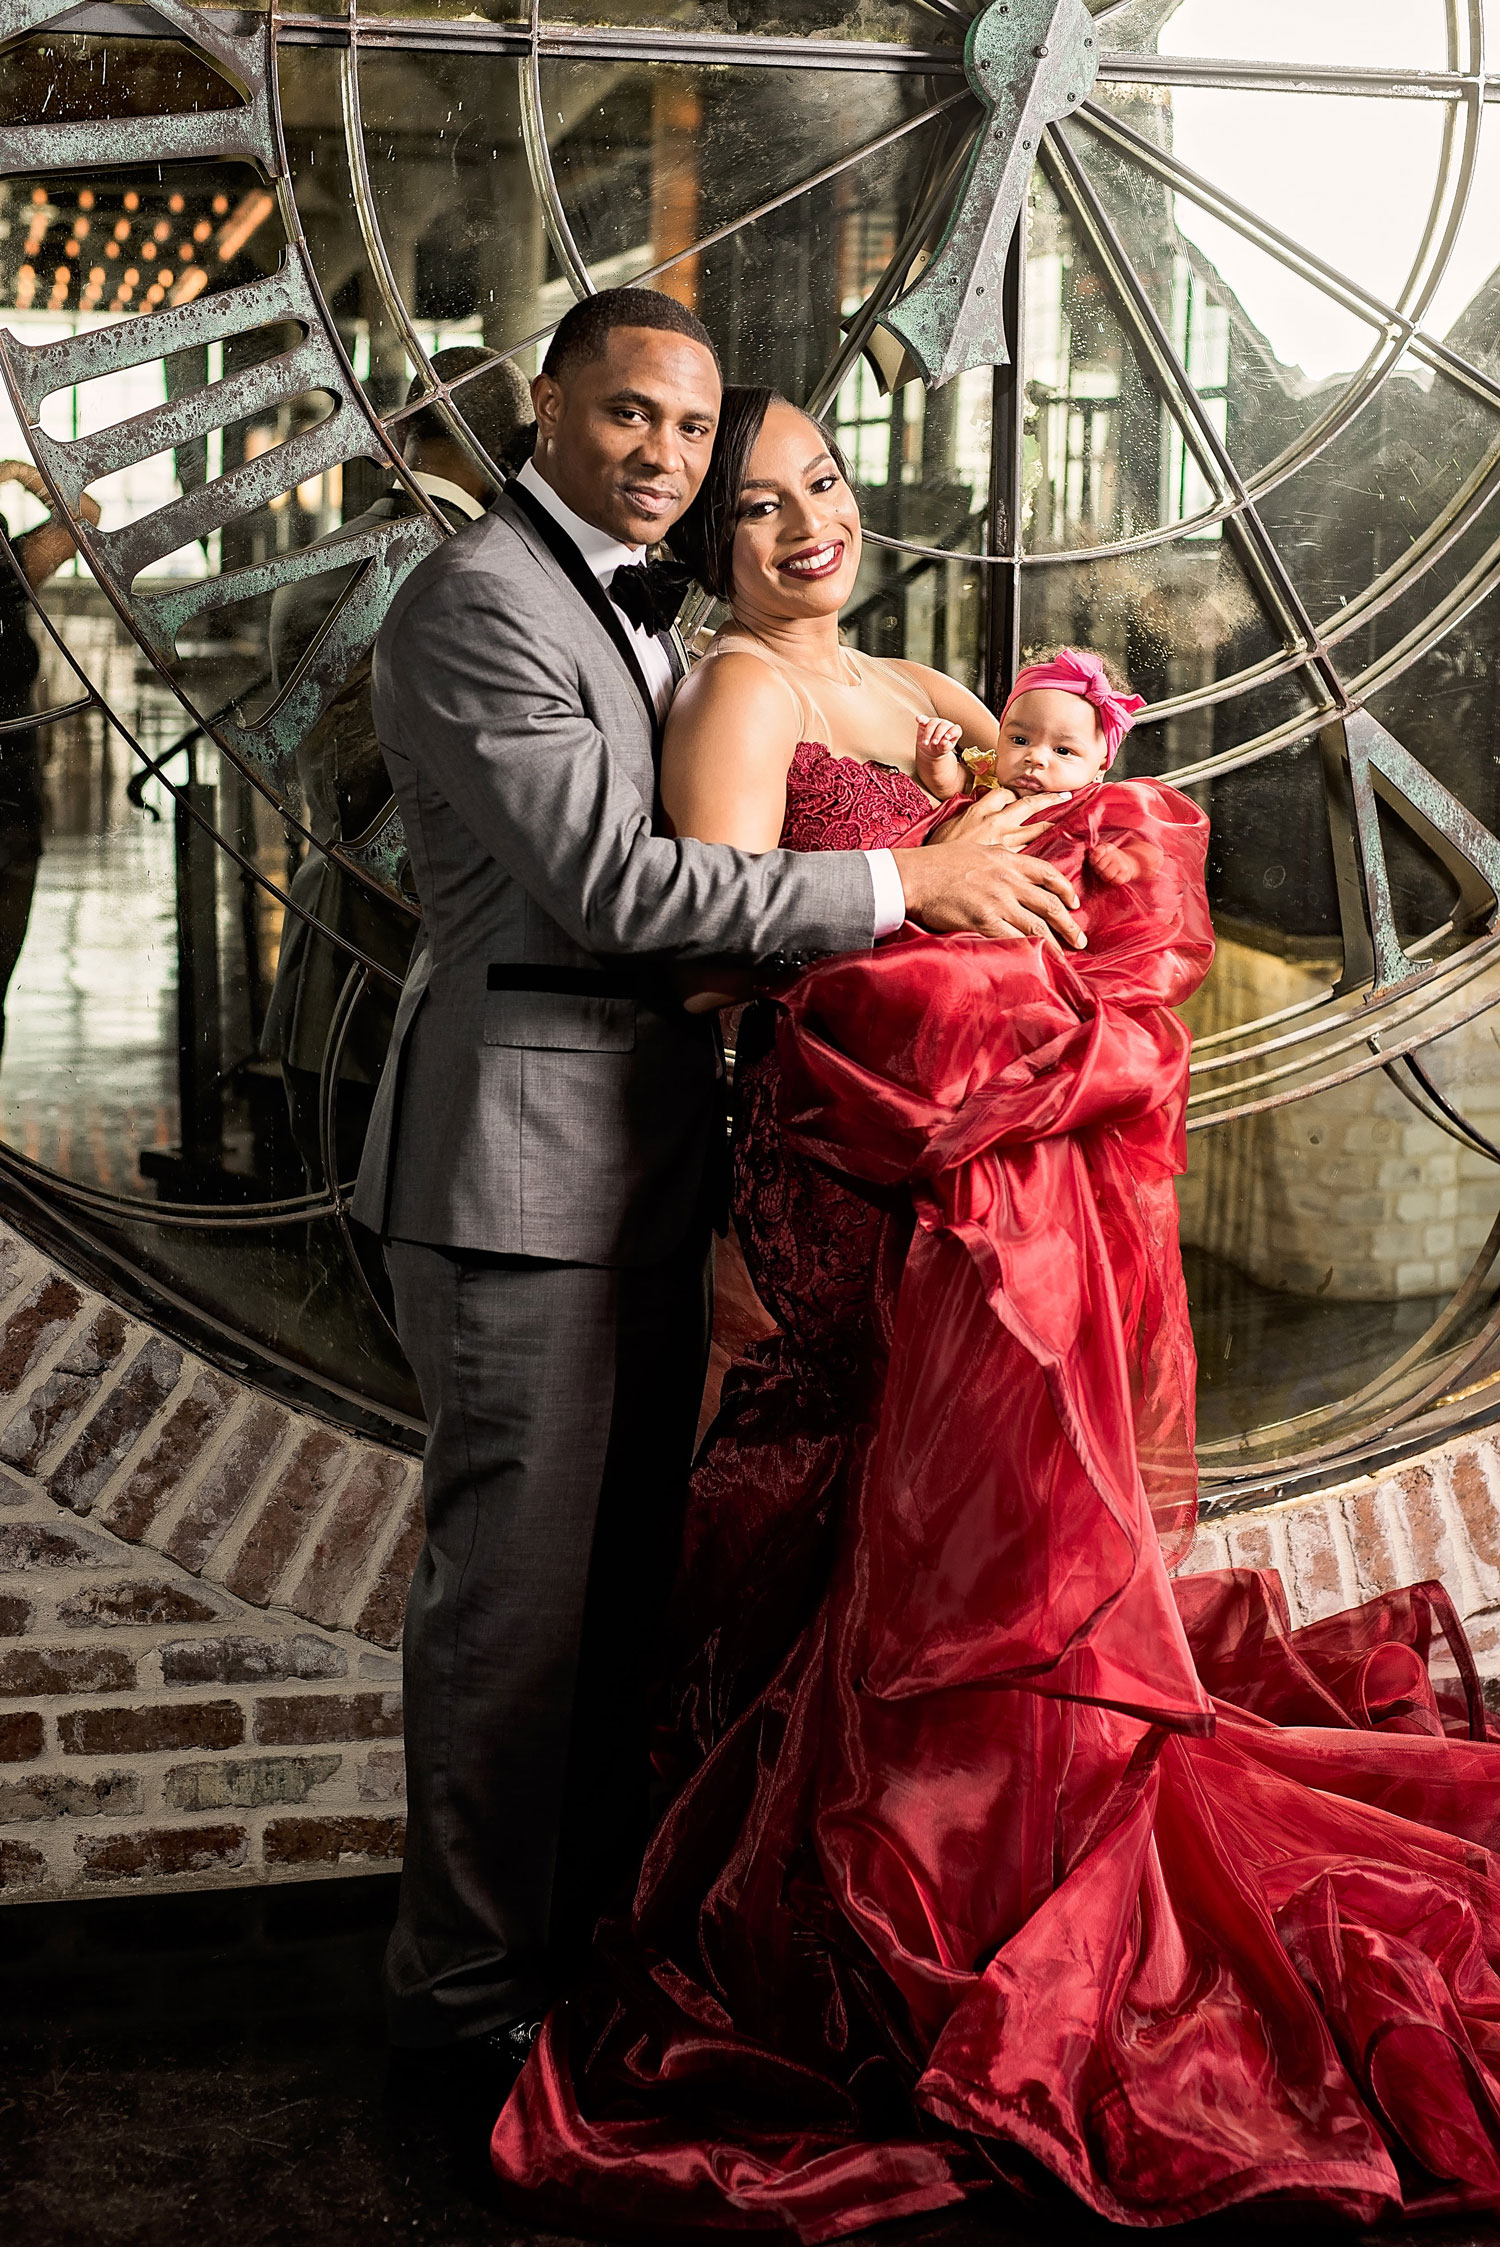 Kacey Angulo and Tony Sipp Houston Astros baseball player wedding engagement photo shoot session with daughter